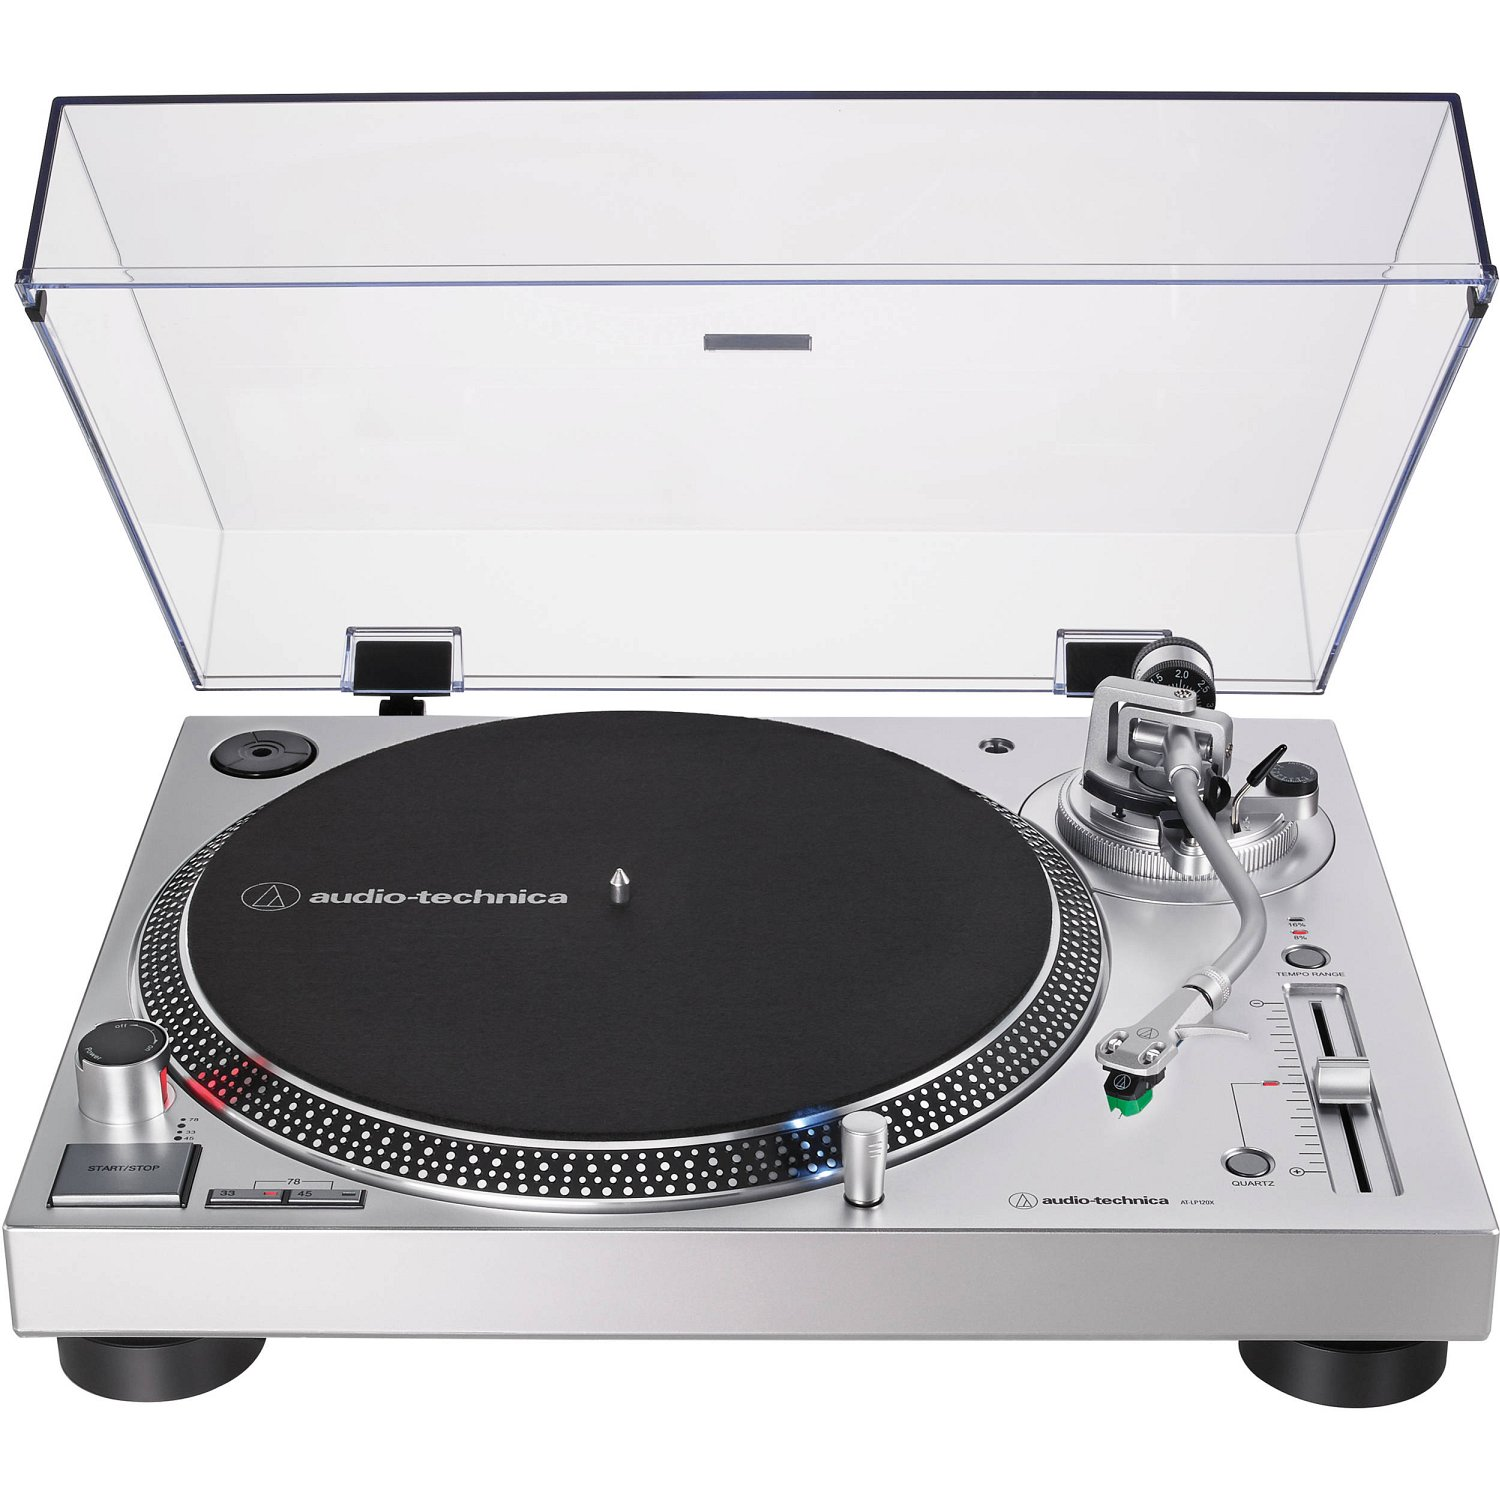 Audio-Technica AT-LP120XUSB-SV (SILVER) pilt 2